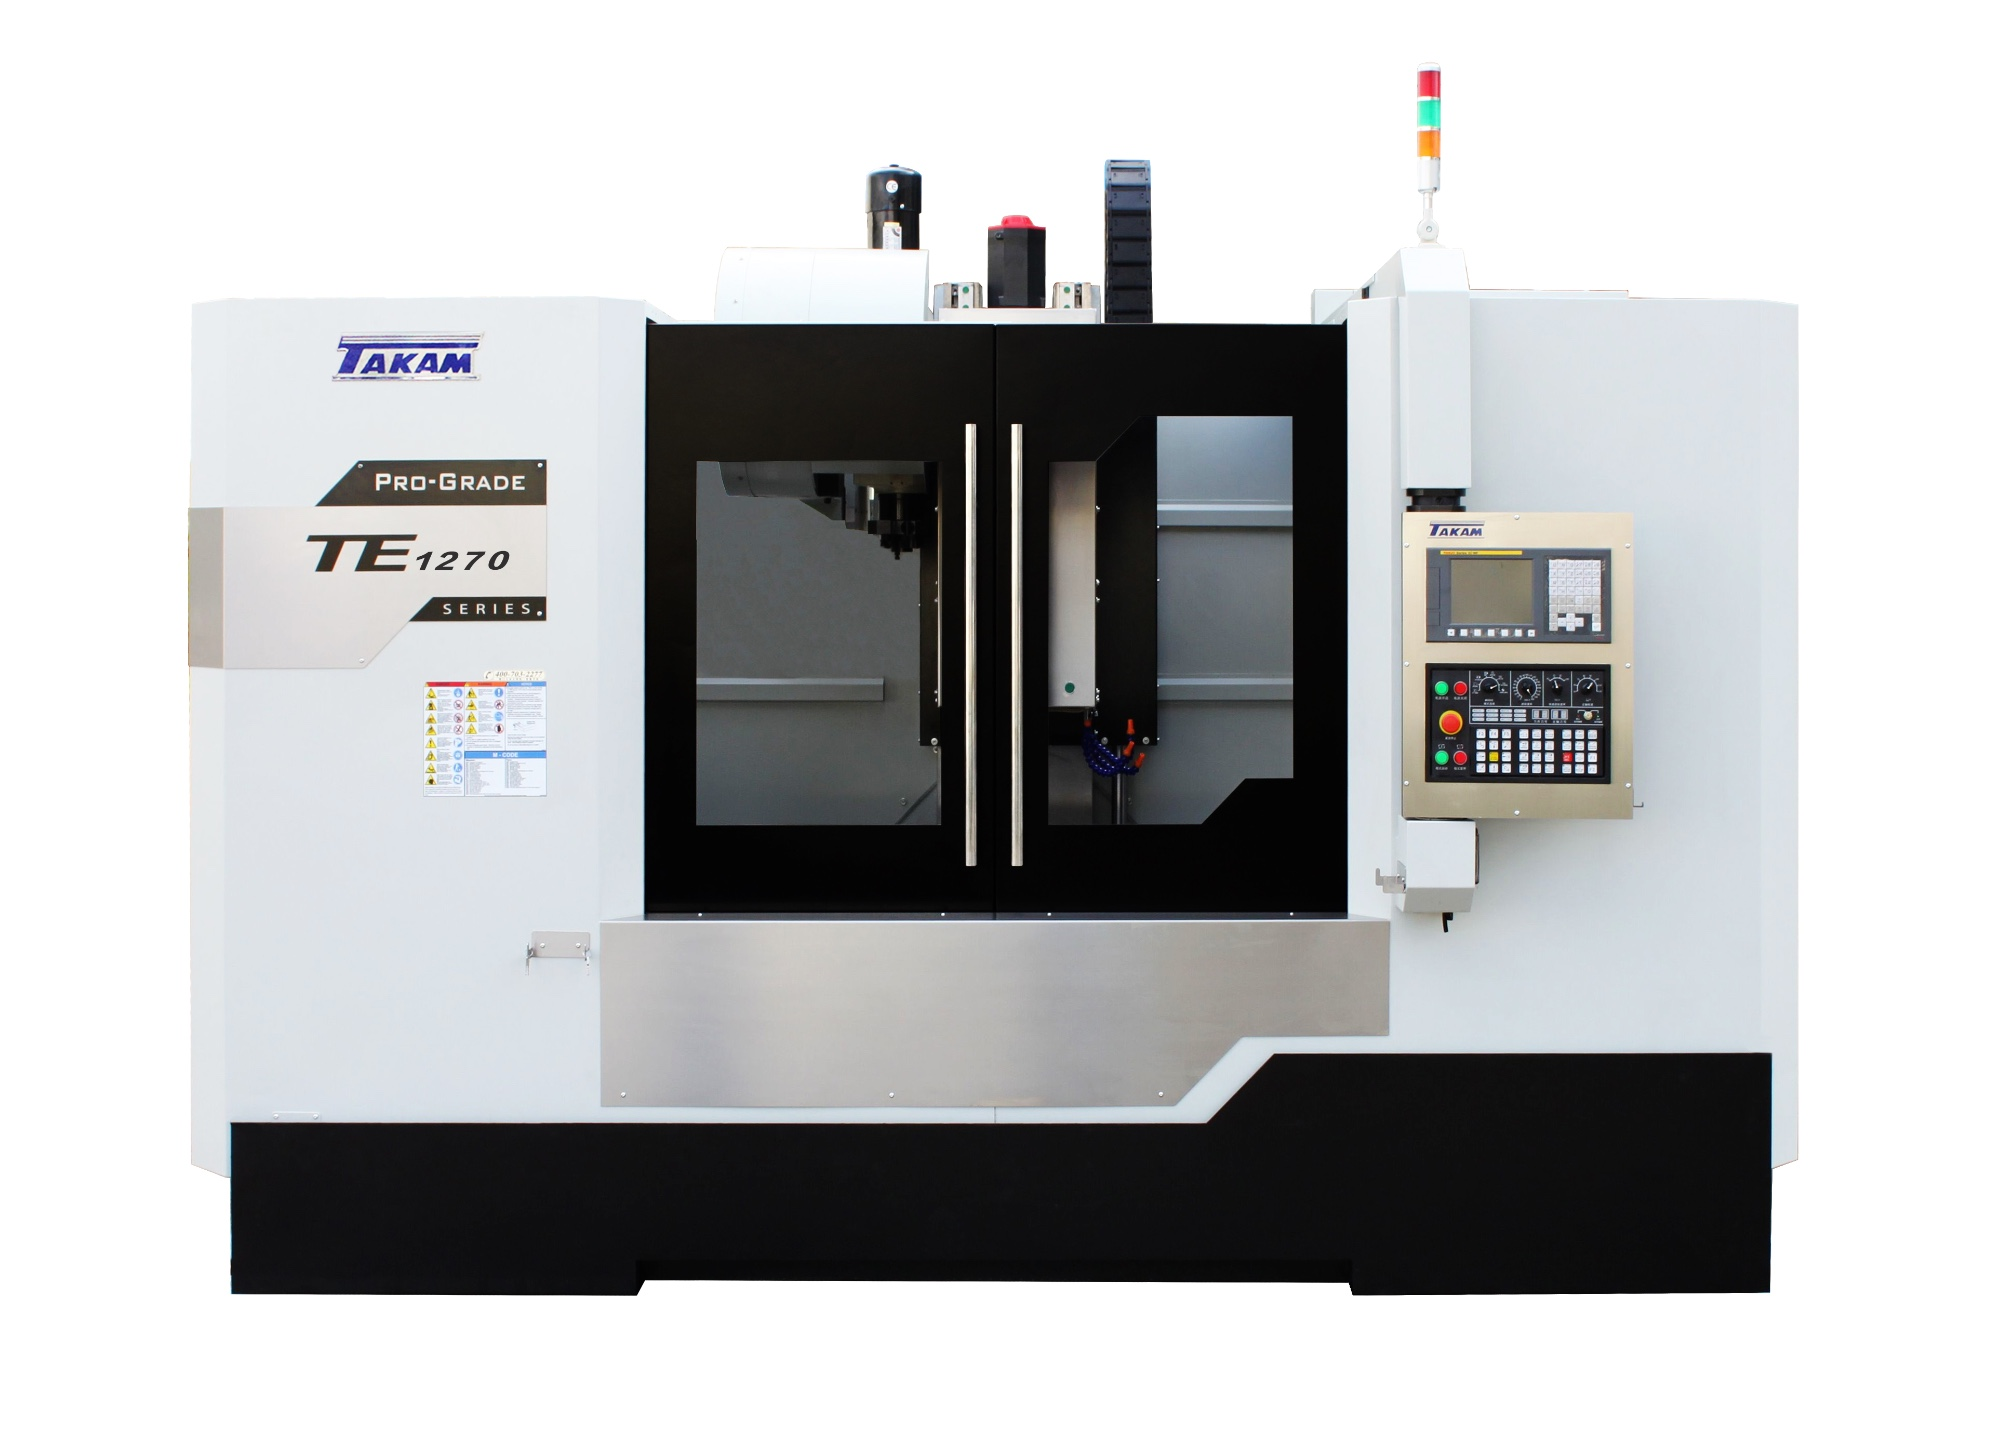 Comprar TE-1260 4th Axis Cnc Vertical Machine Center, TE-1260 4th Axis Cnc Vertical Machine Center Precios, TE-1260 4th Axis Cnc Vertical Machine Center Marcas, TE-1260 4th Axis Cnc Vertical Machine Center Fabricante, TE-1260 4th Axis Cnc Vertical Machine Center Citas, TE-1260 4th Axis Cnc Vertical Machine Center Empresa.